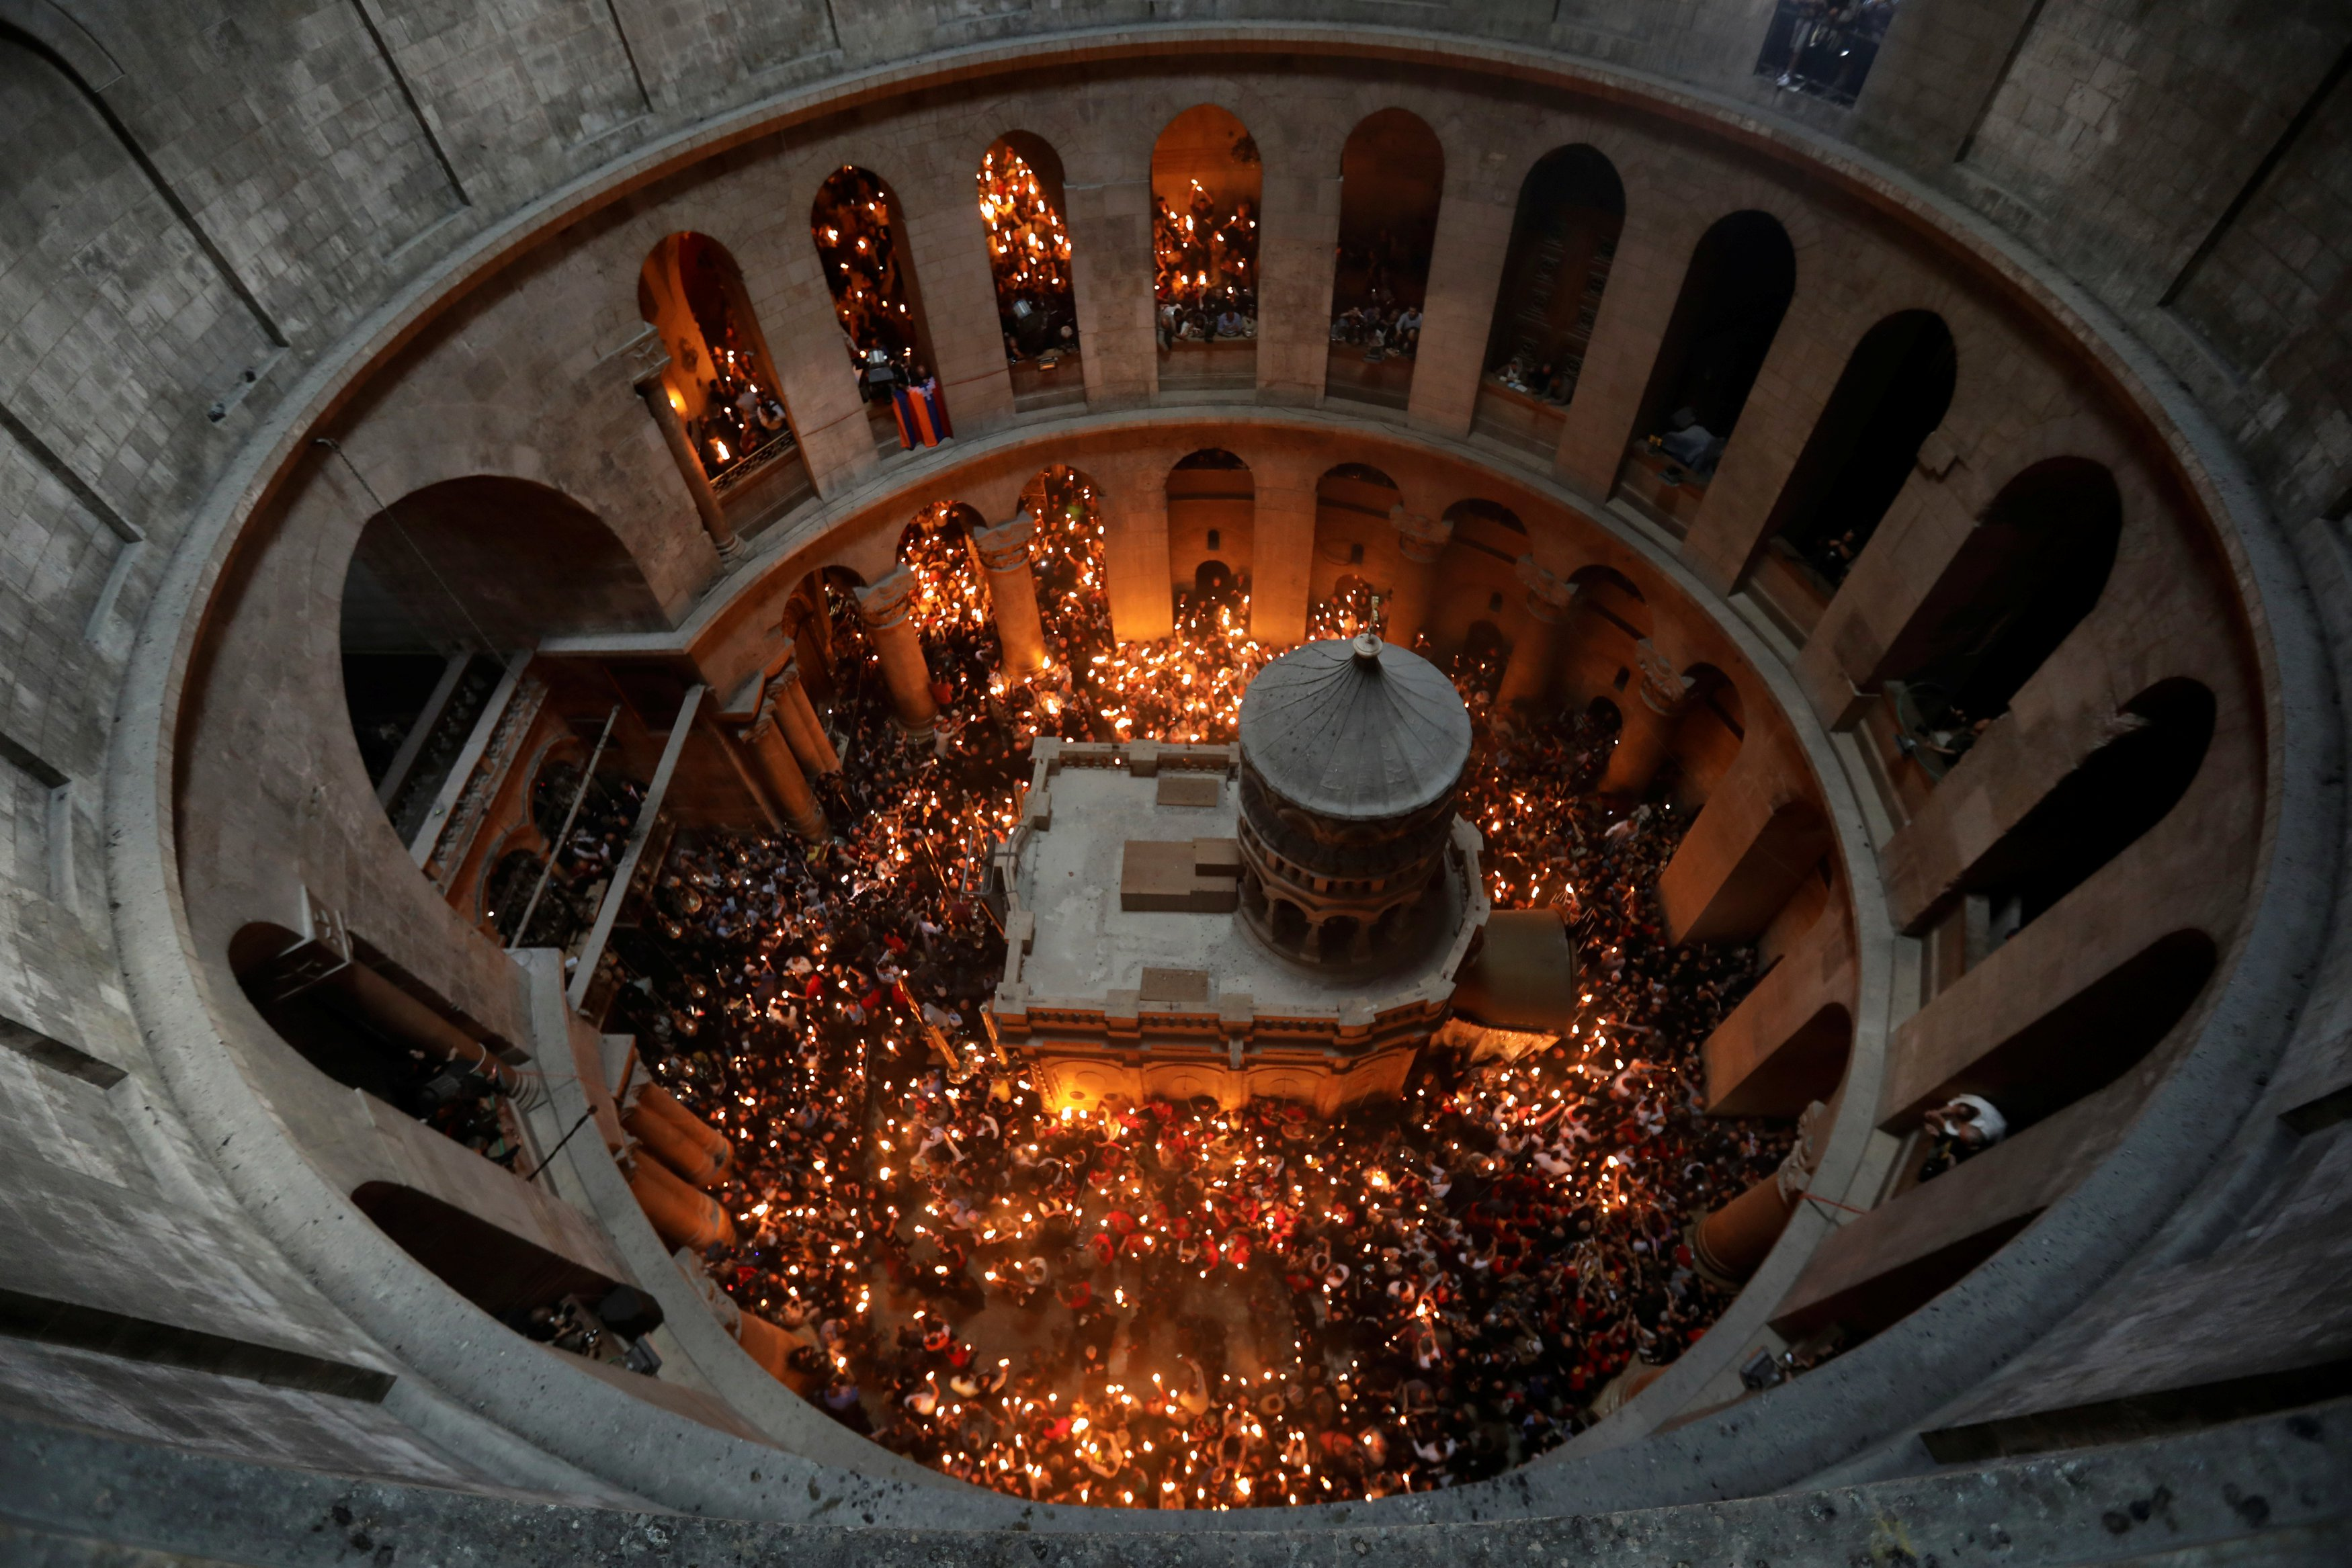 Worshippers hold candles as they take part in the Christian Orthodox Holy Fire ceremony at the Church of the Holy Sepulchre in Jerusalem's Old City PHOTO: REUTERS